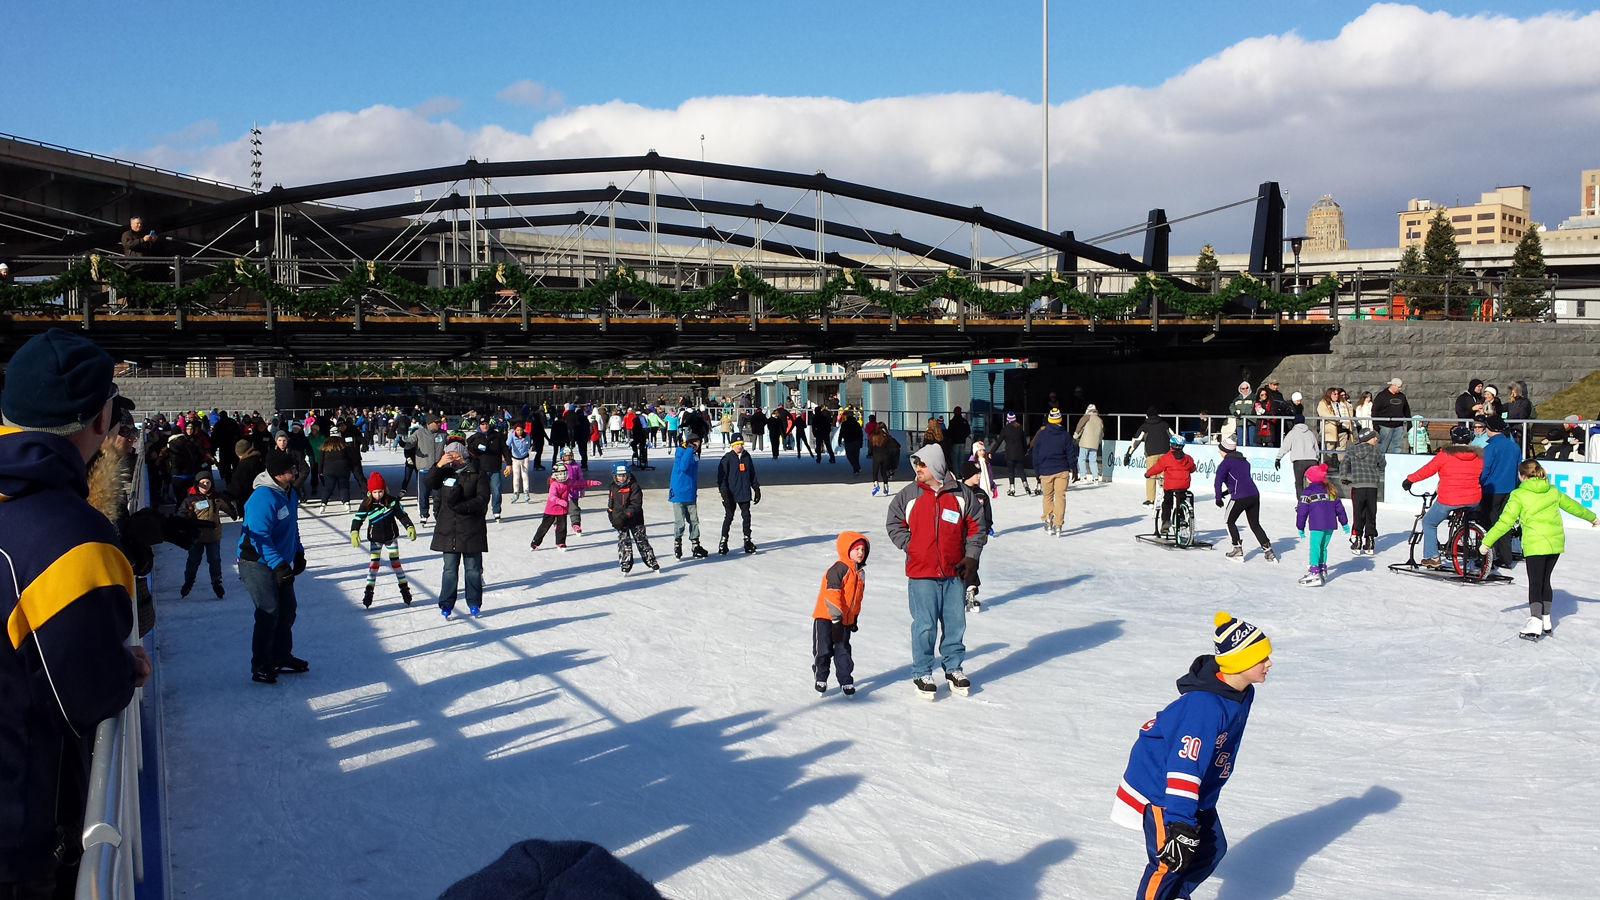 The rink at Canalside is like a day at the beach on a sunny day in Buffalo. Skaters were deterred by the long or the chilly windy.